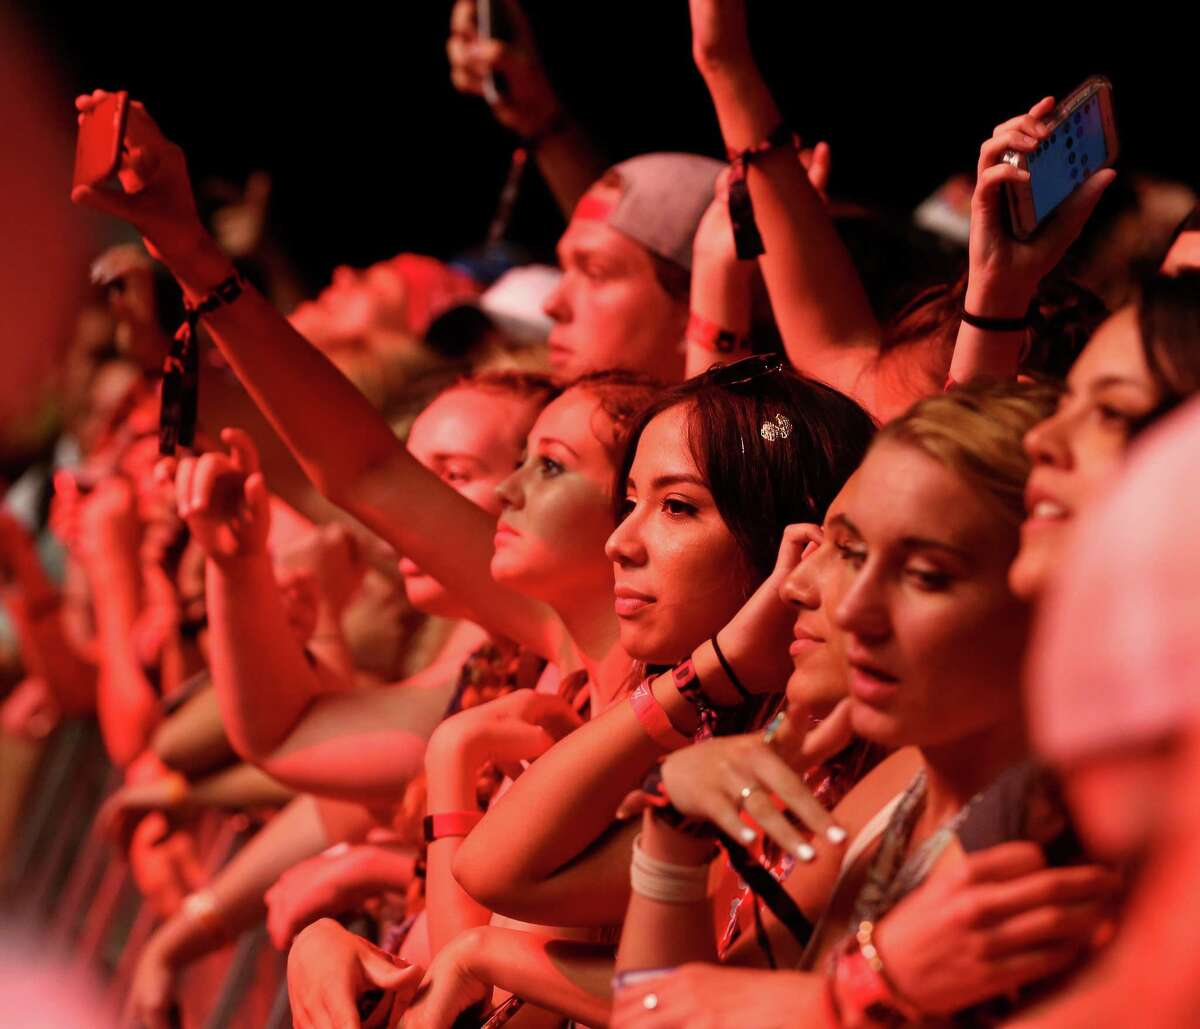 Fans wait for Collegrove to perform at Free Press Summer Fest, at NRG, Saturday, June 4, 2016, in Houston.